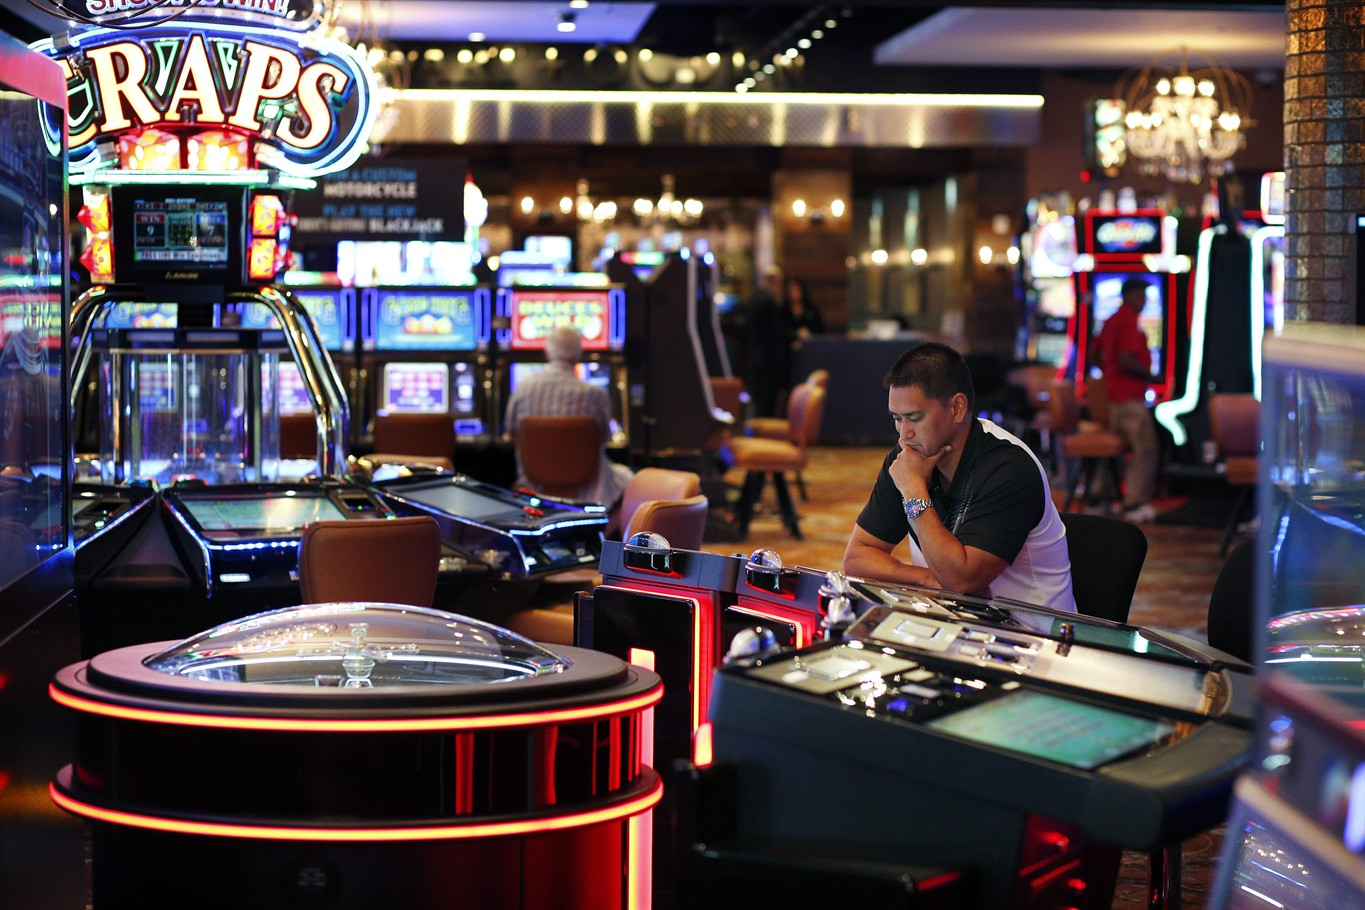 Hotel and gambling industry casino in ac